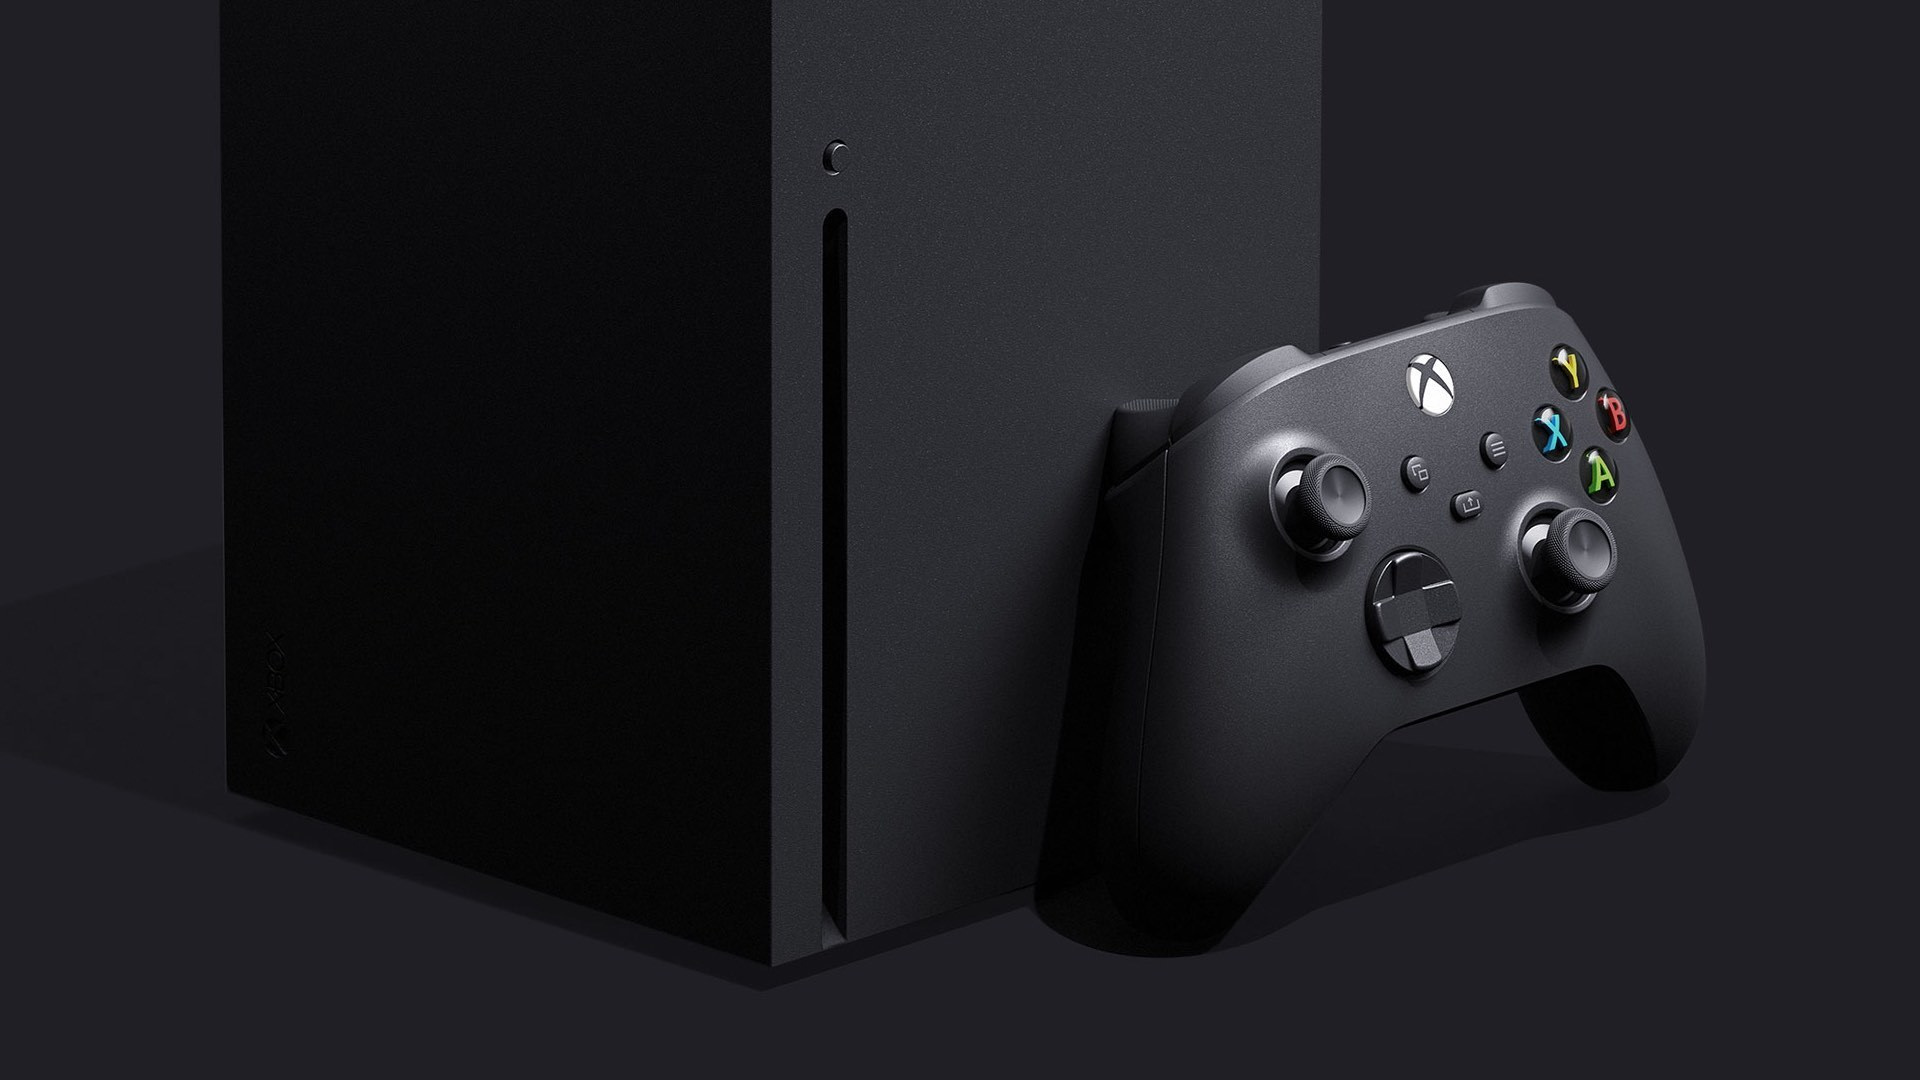 Rumour Ps5 More Powerful Than Xbox Series X Says Old Leak Given New Life Push Square